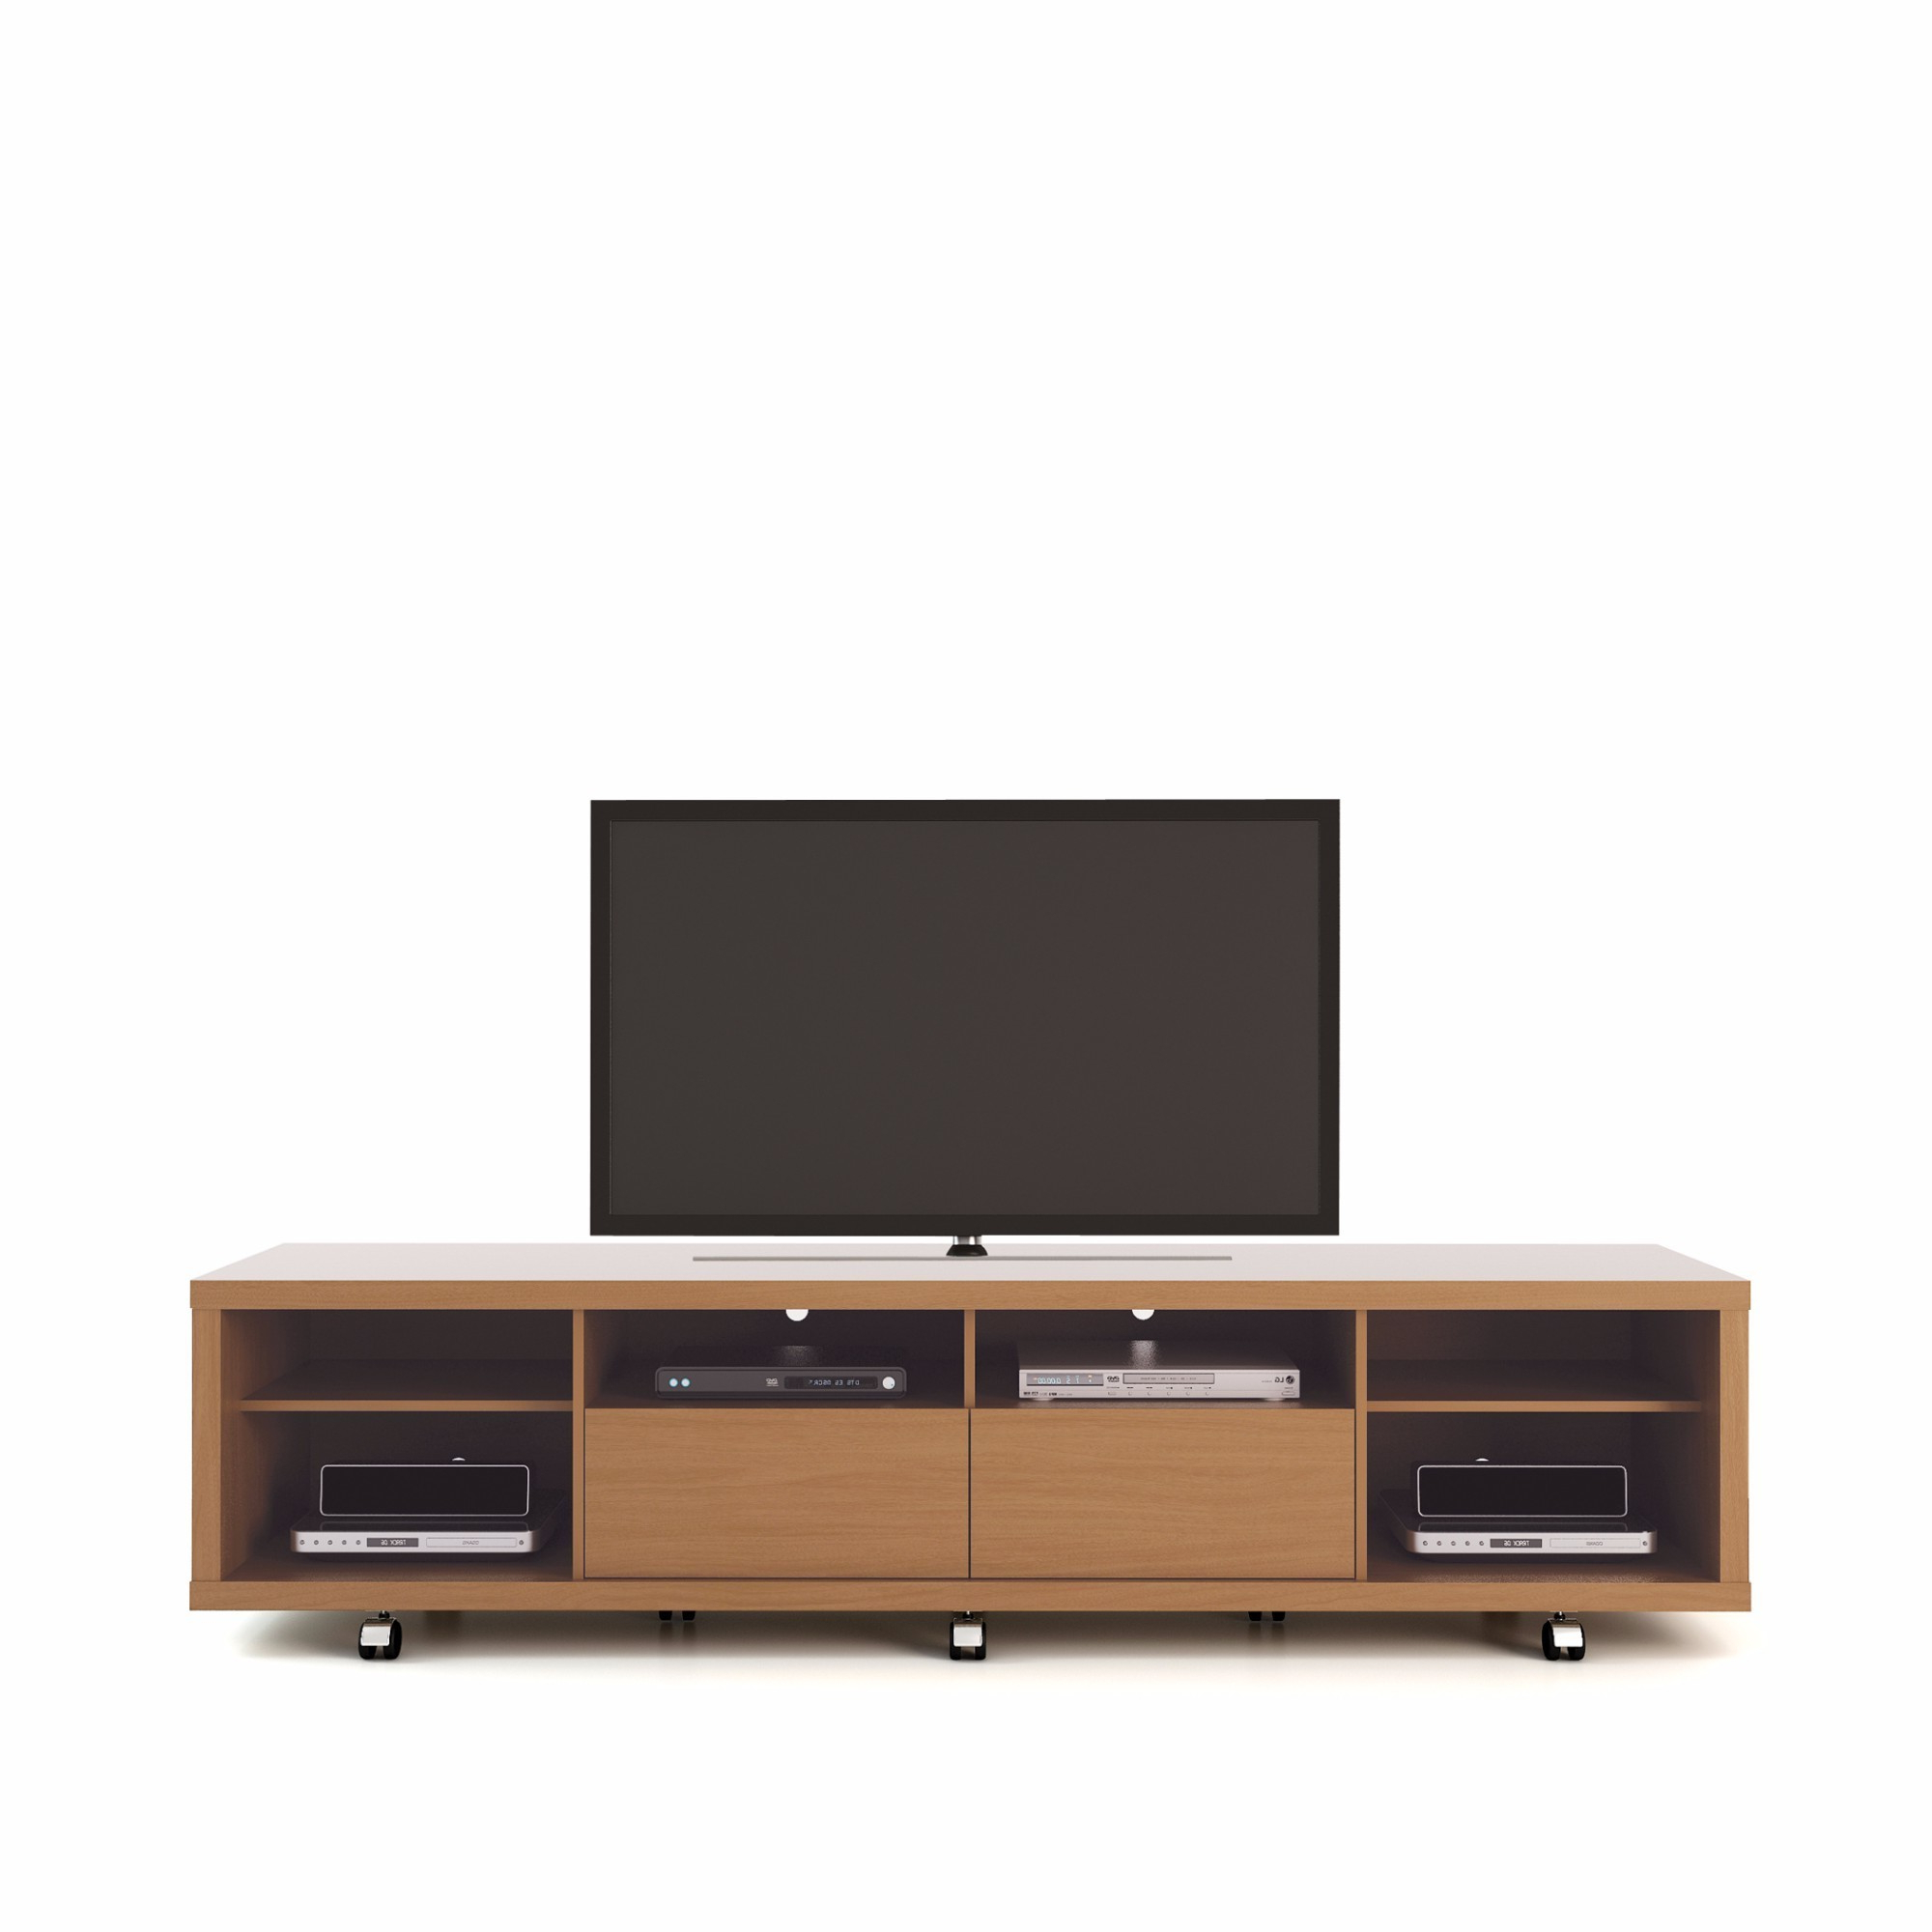 Maple Tv Stands For Flat Screens Inside Newest Shop Manhattan Comfort Cabrini Maple Cream/ Off White  (View 10 of 20)